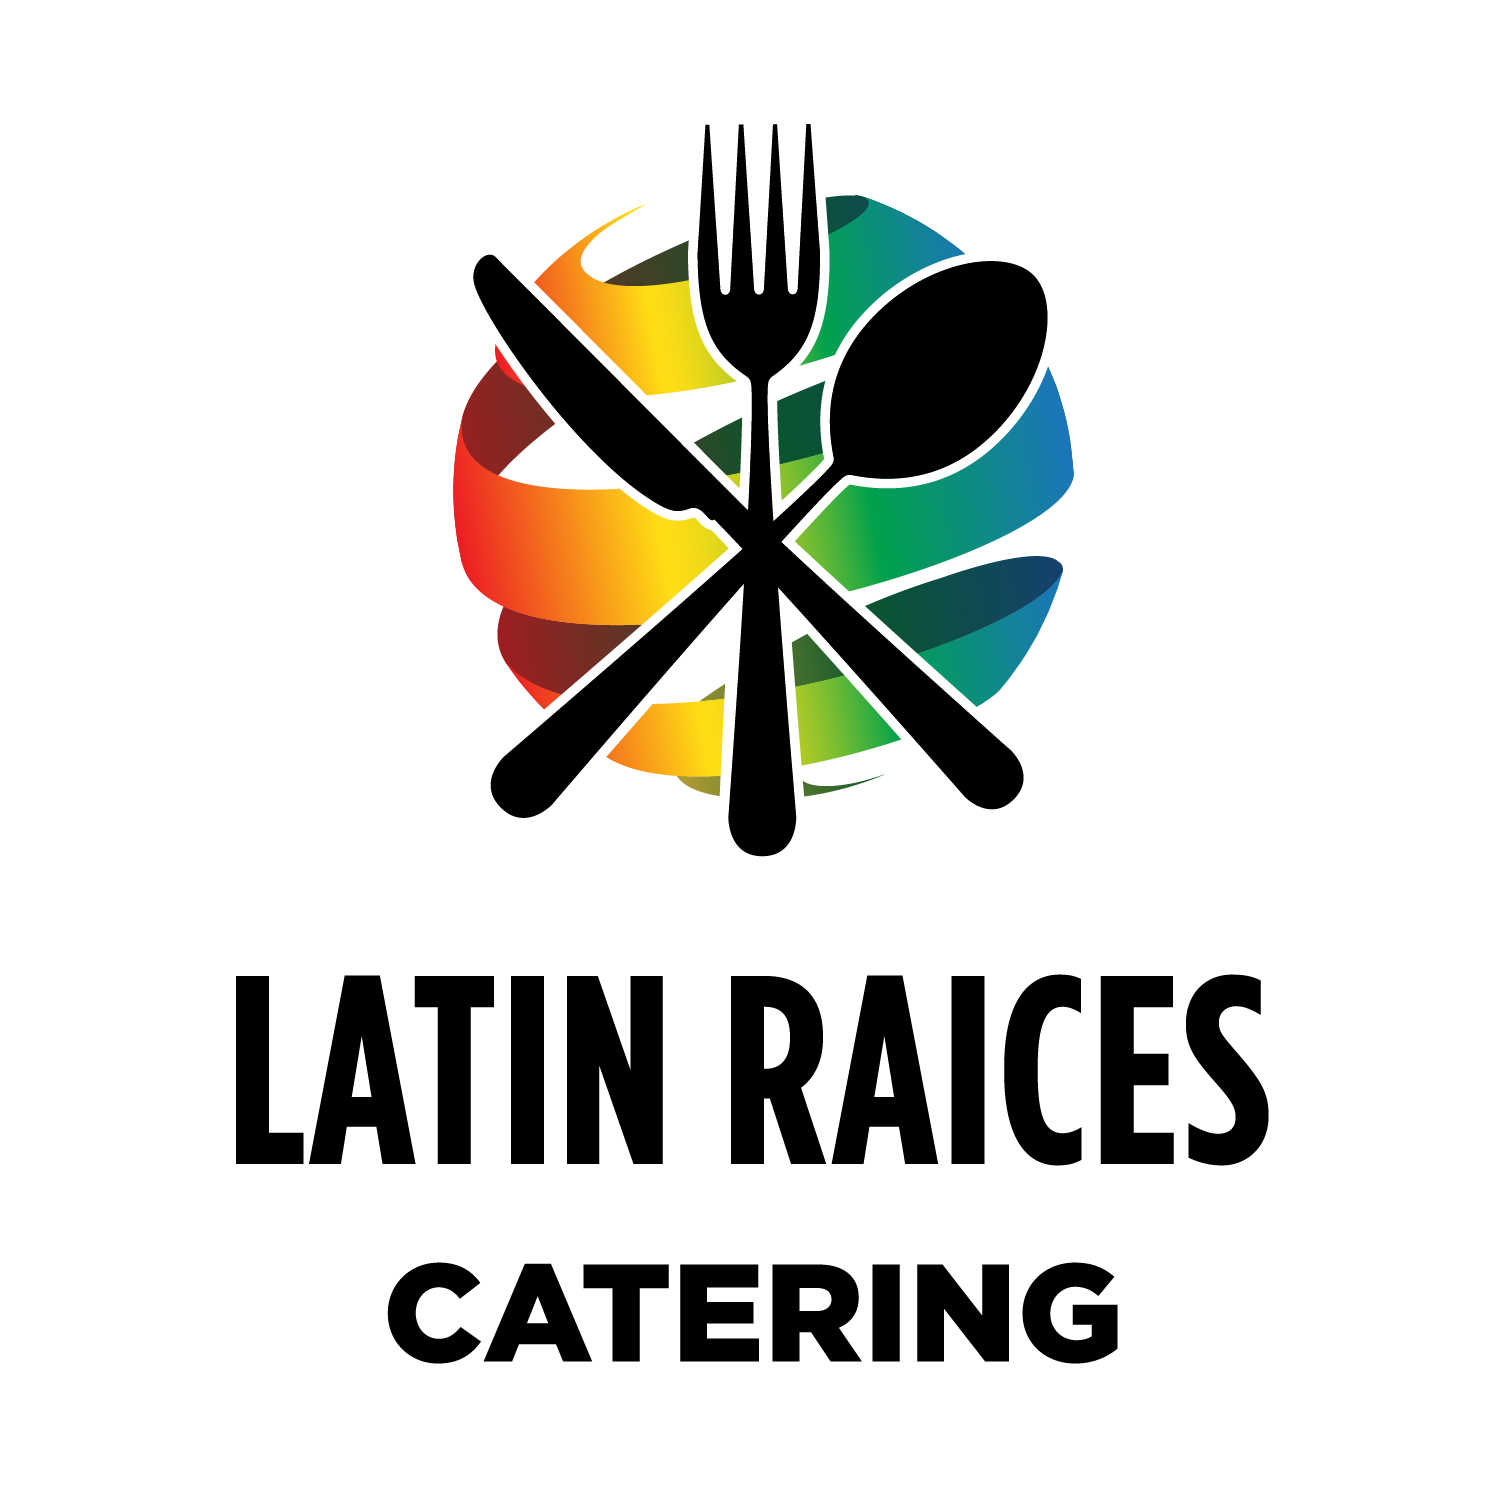 Latin Raices Catering_Opaque__WebScreen.png